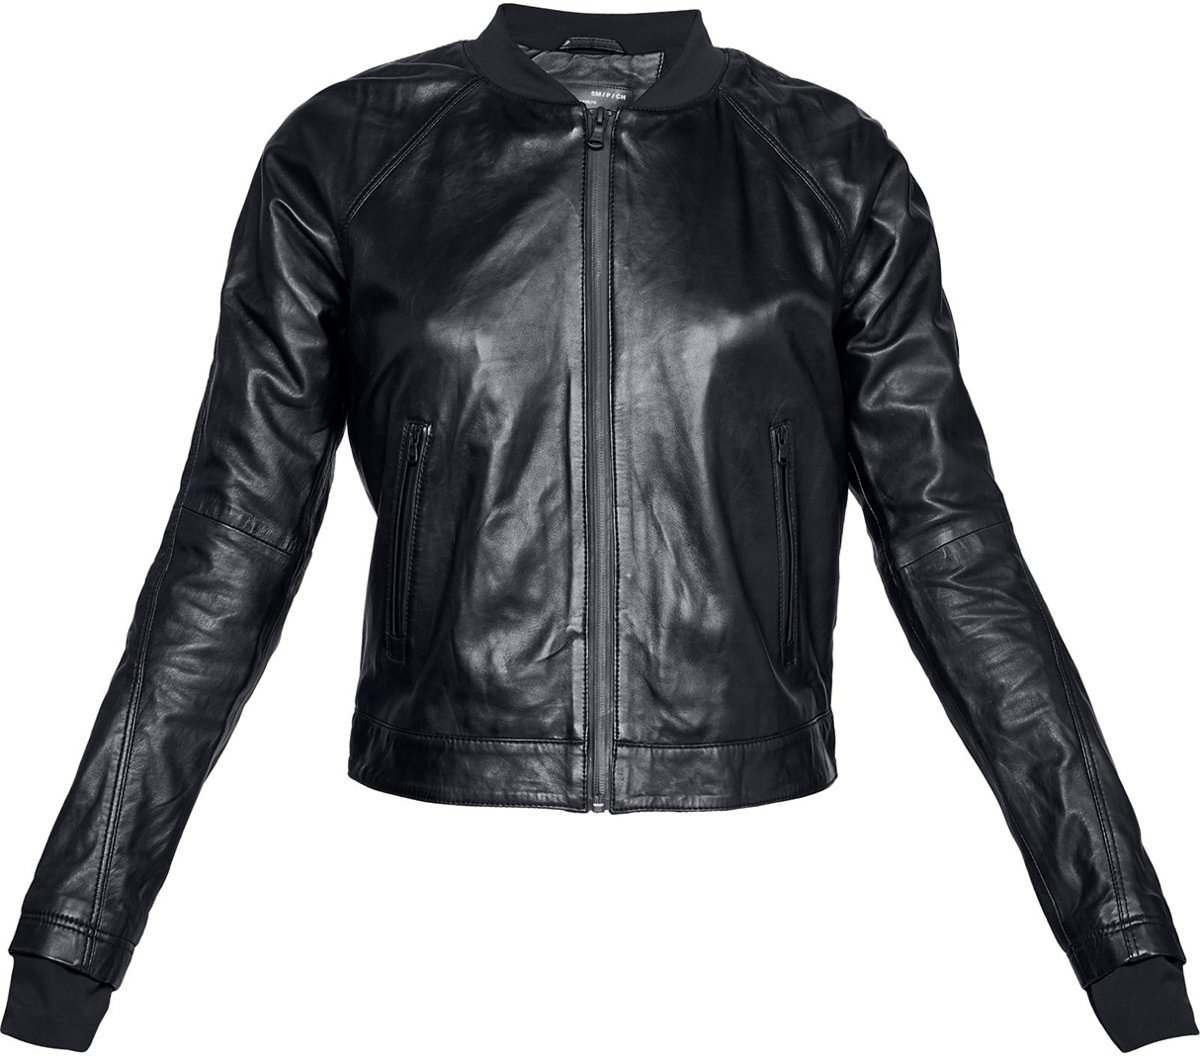 Under Armour - Misty Leather Jacket-BLK - Dames - maat M